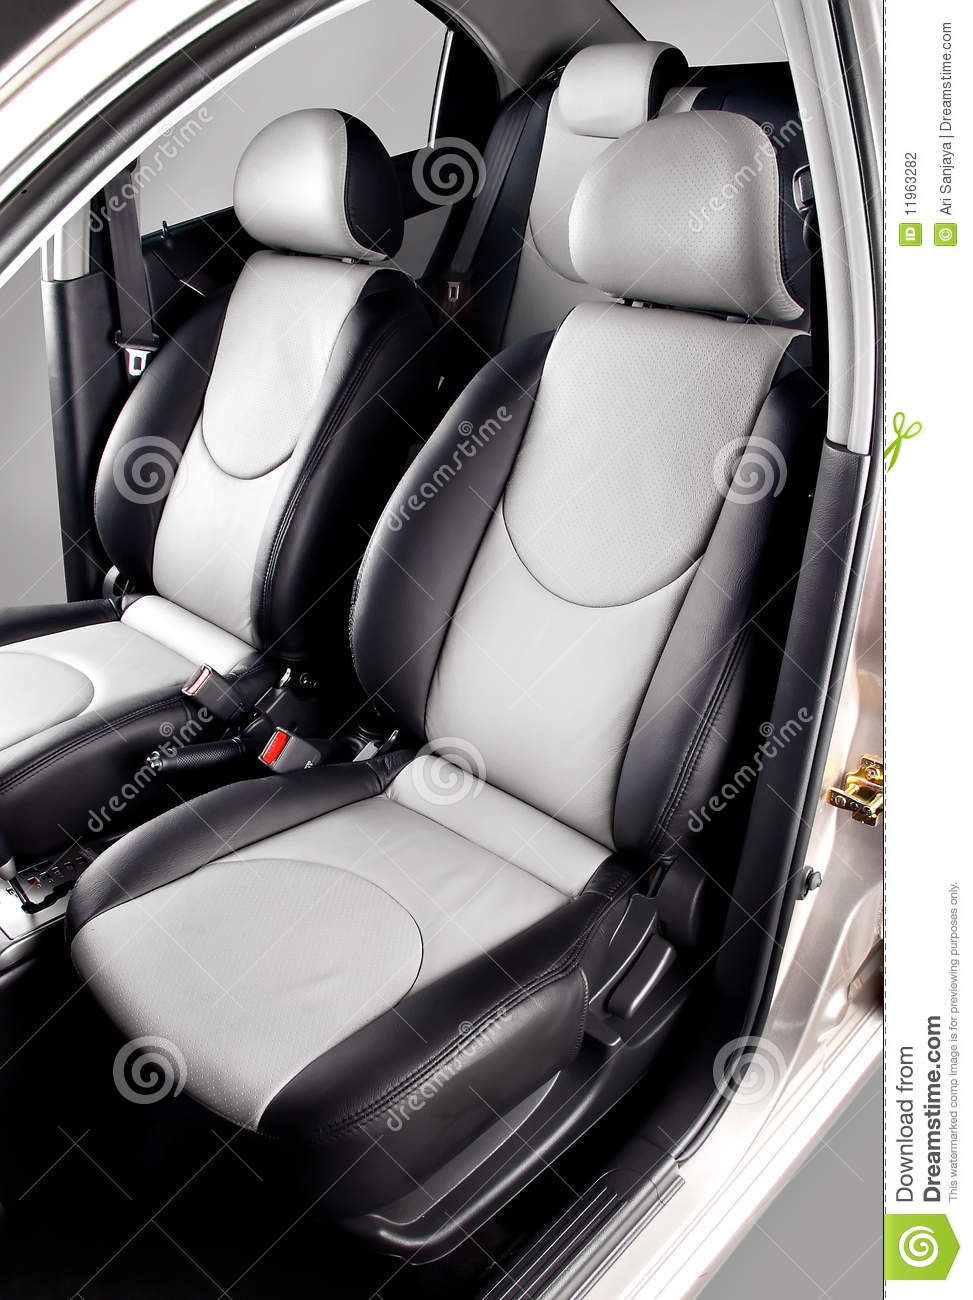 car back seats interior stock photography image 11963282. Black Bedroom Furniture Sets. Home Design Ideas